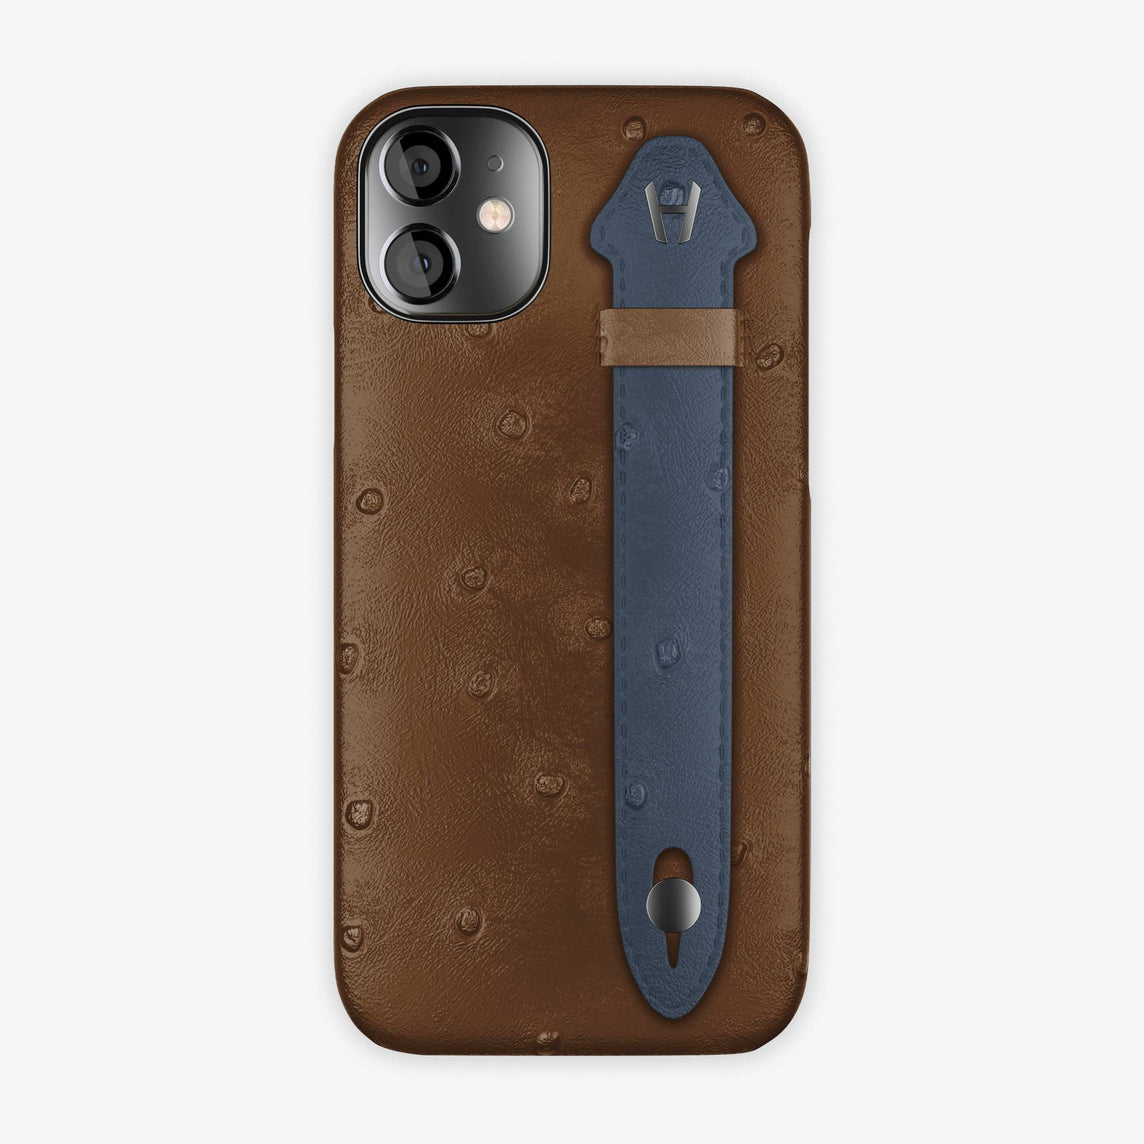 Ostrich Side Finger Case iPhone 12 Mini | Tobacco/Navy Blue - Black